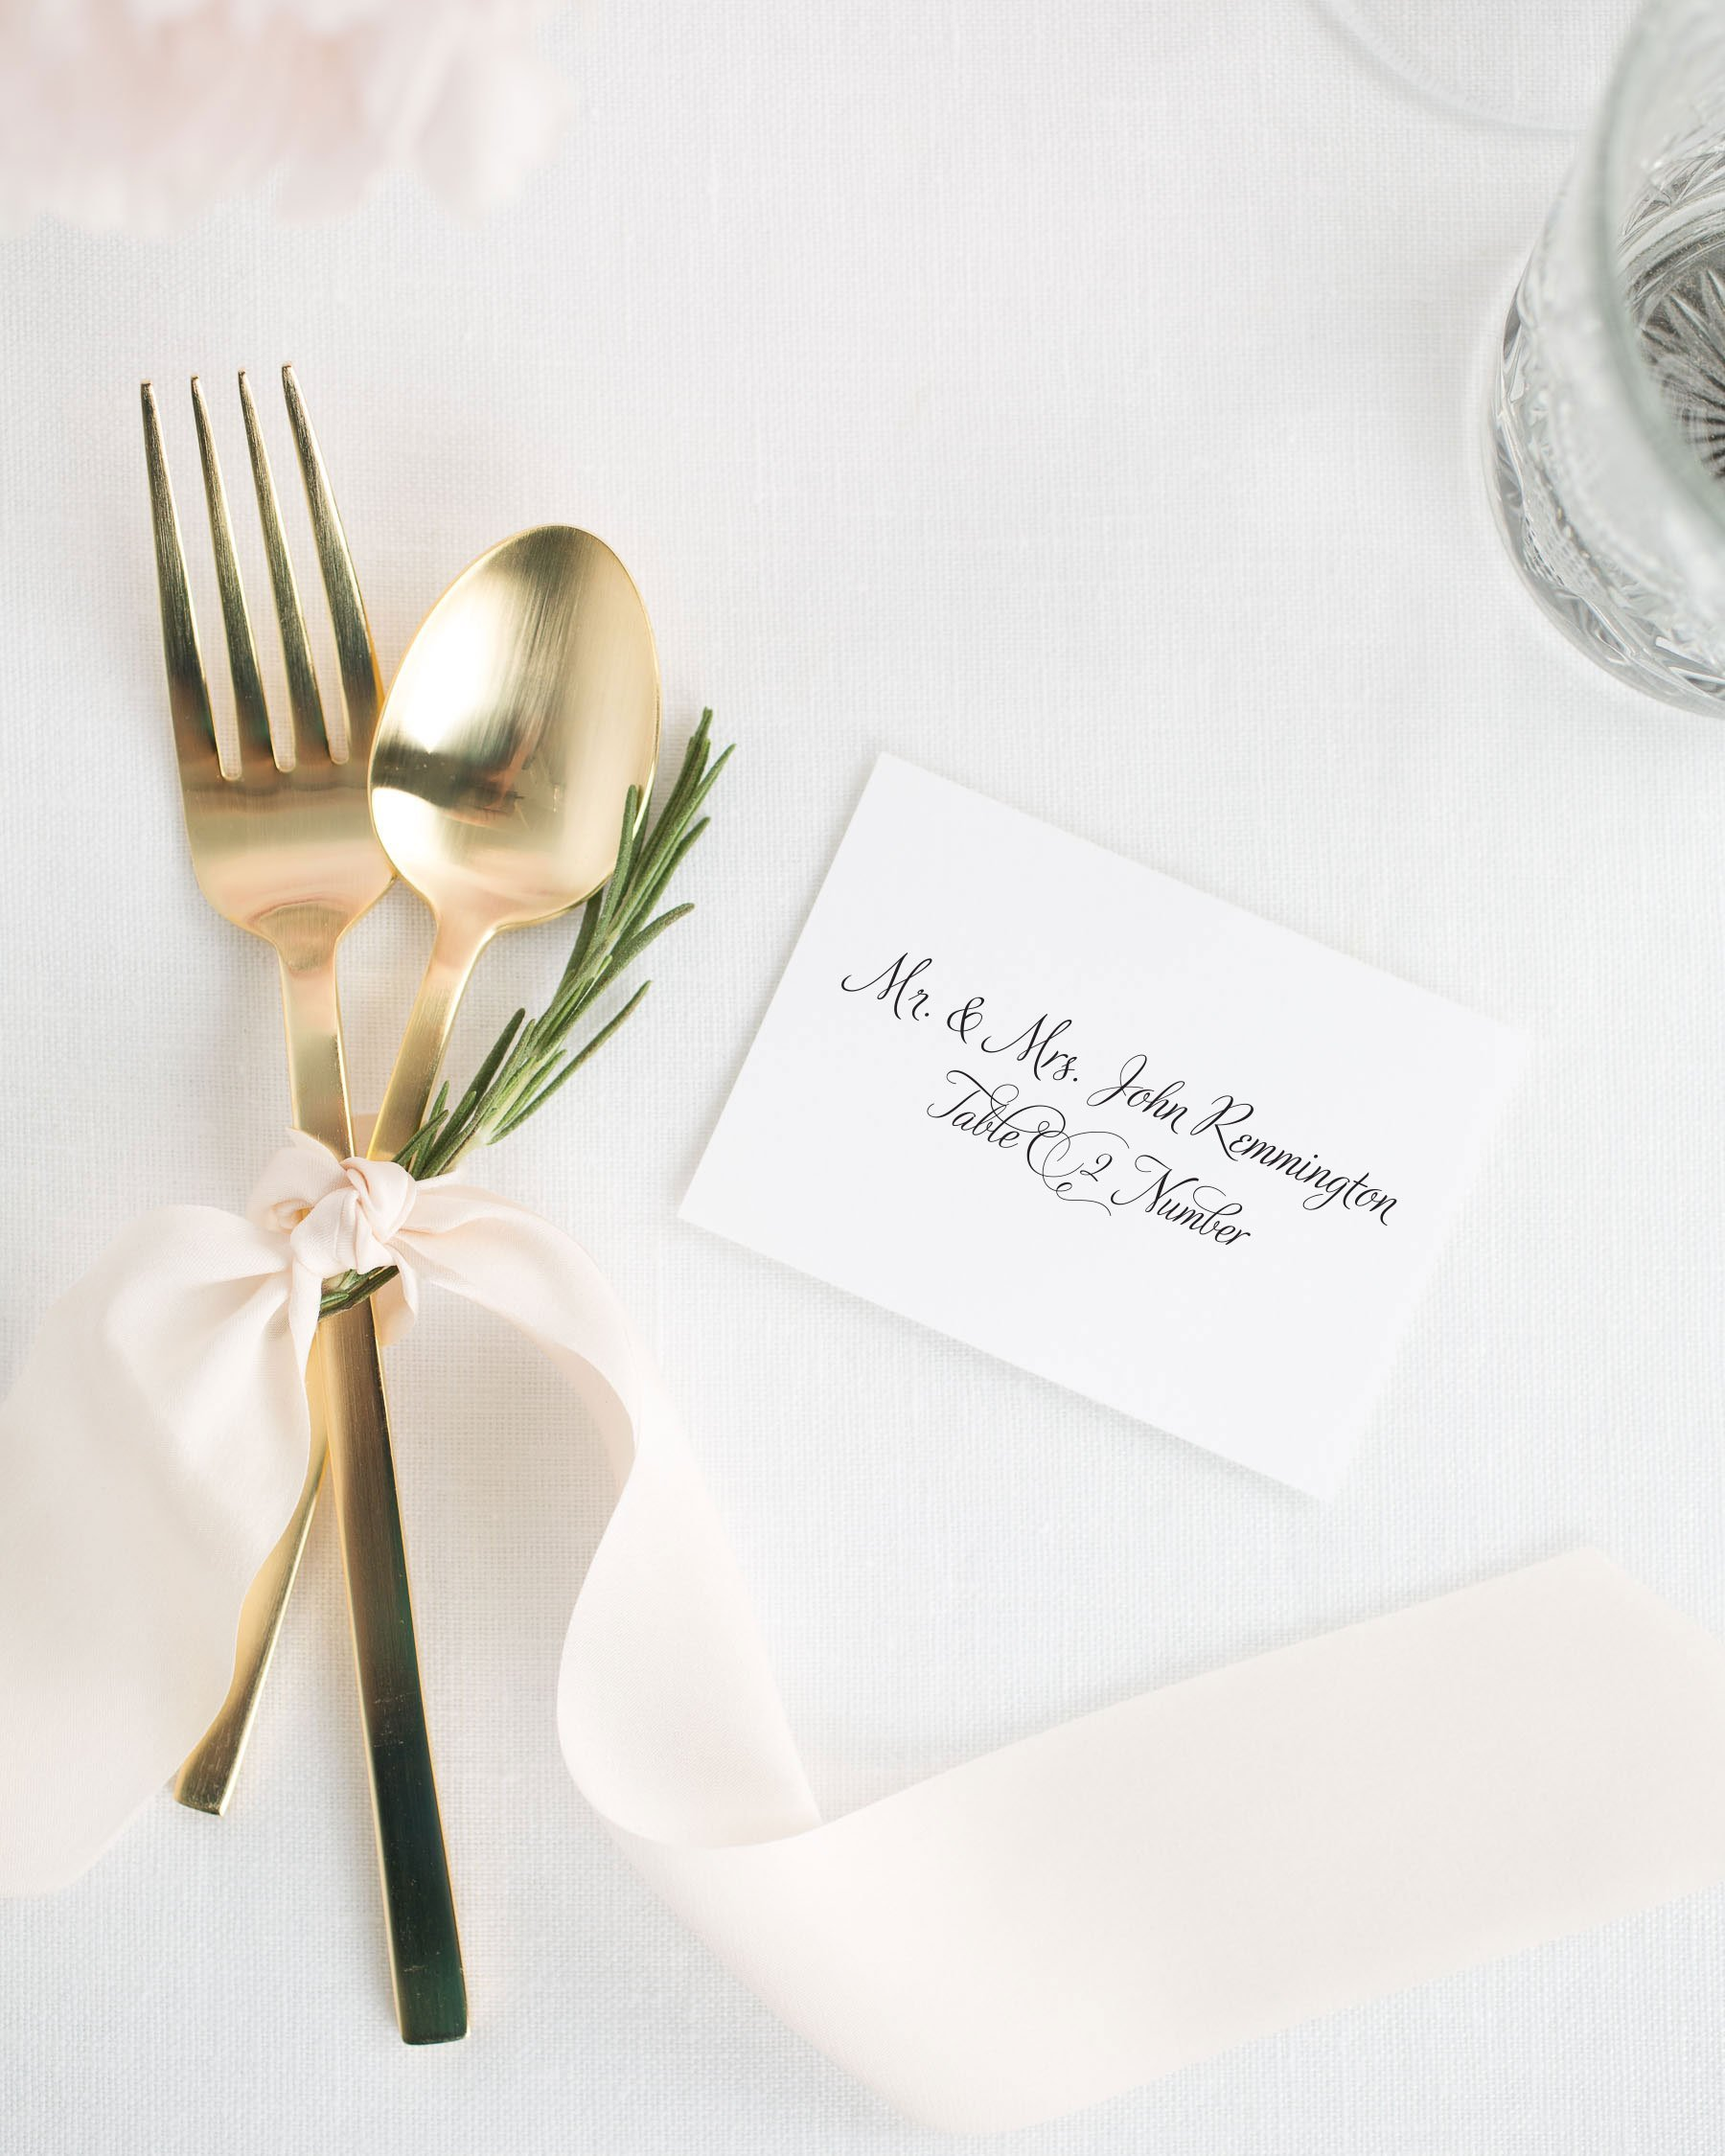 Fairytale Script Wedding Place Cards - Place Cards by Shine